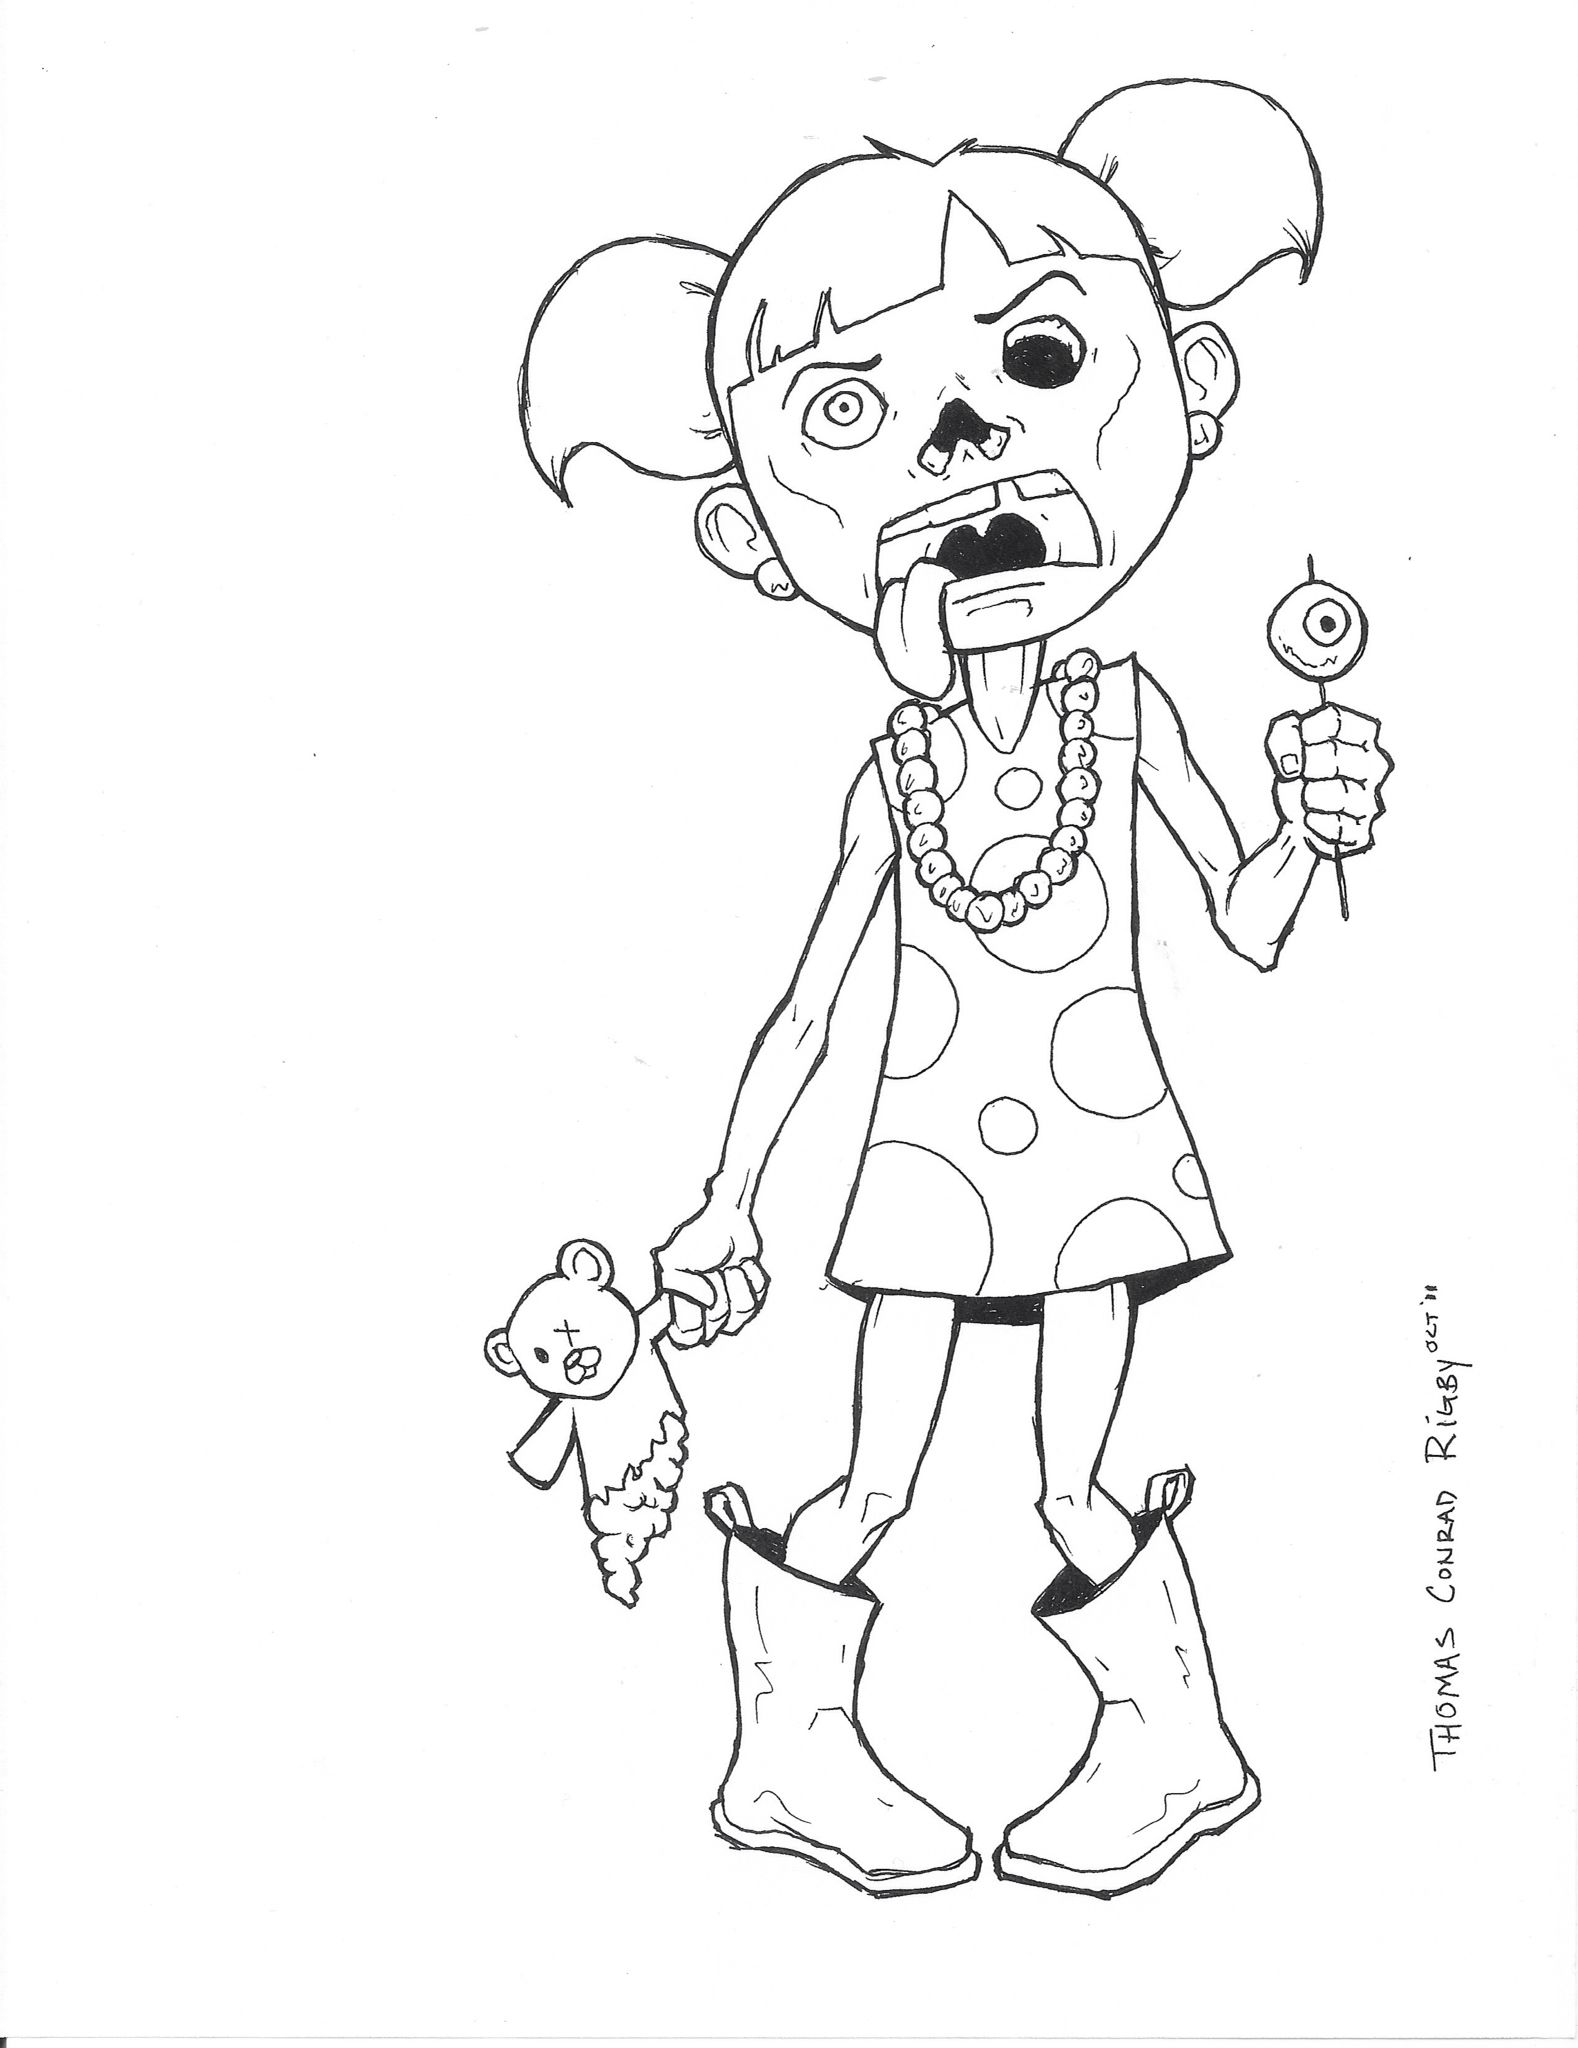 zombie coloring page fall coloring pages halloween coloring pages coloring sheets adult coloring